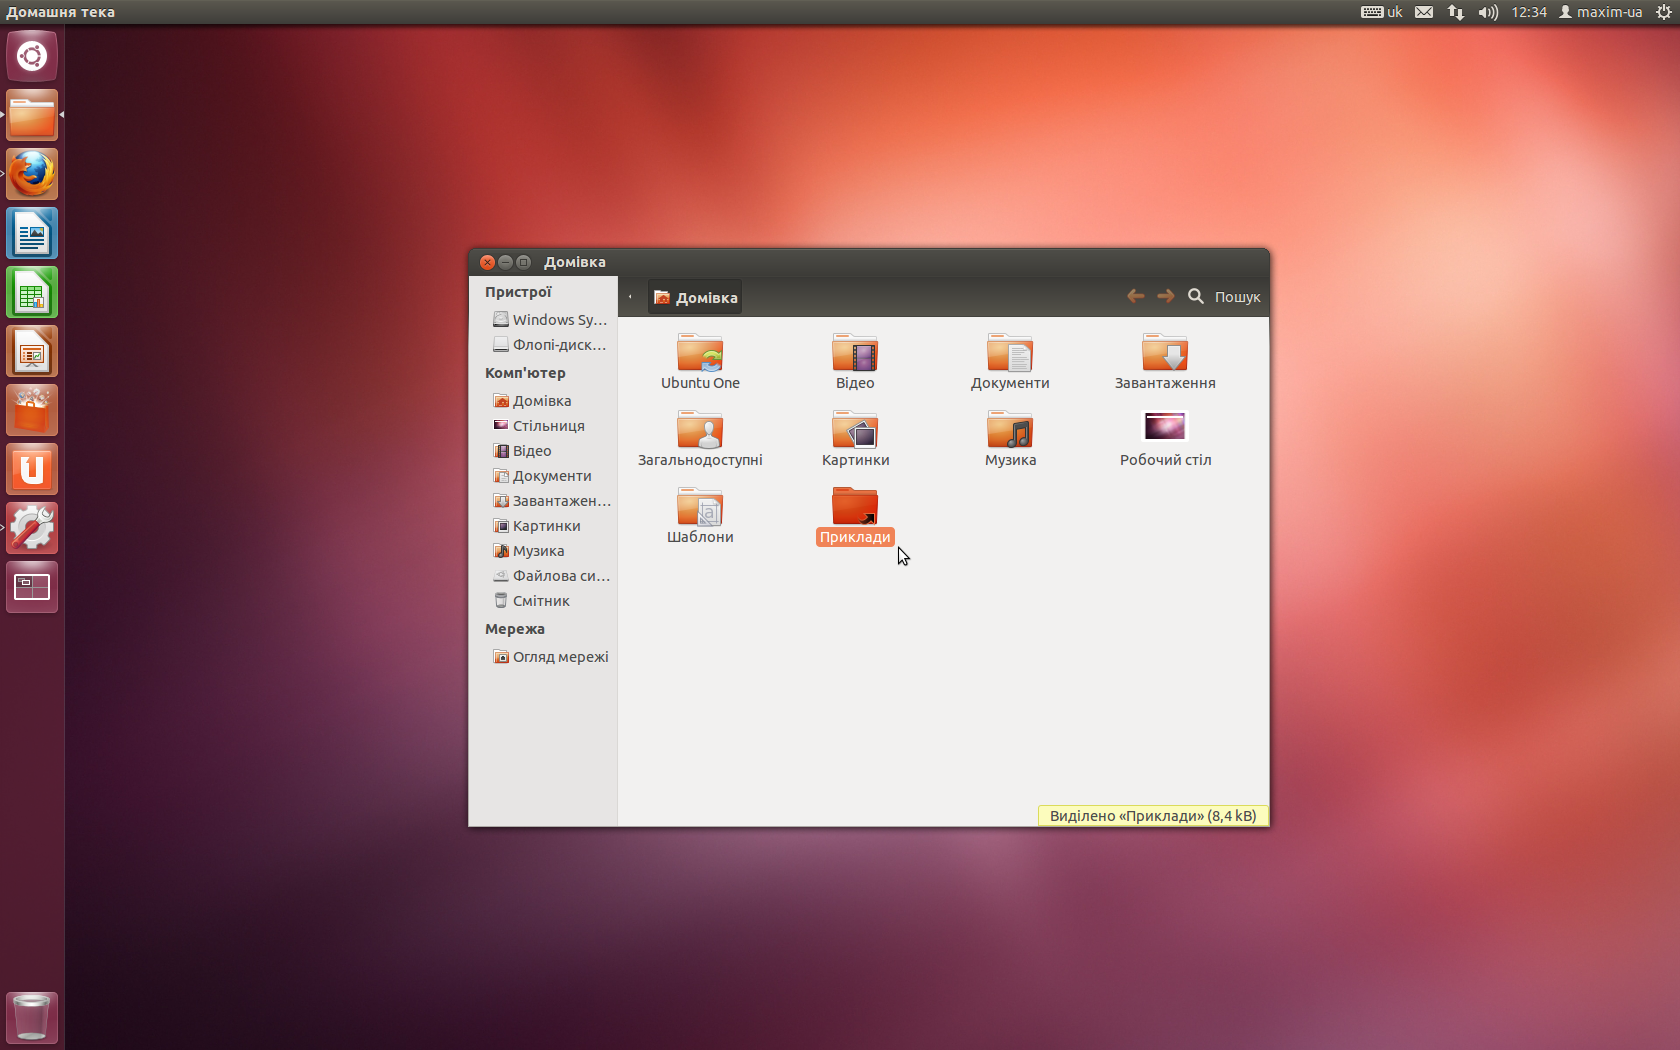 how to delete folder in ubuntu